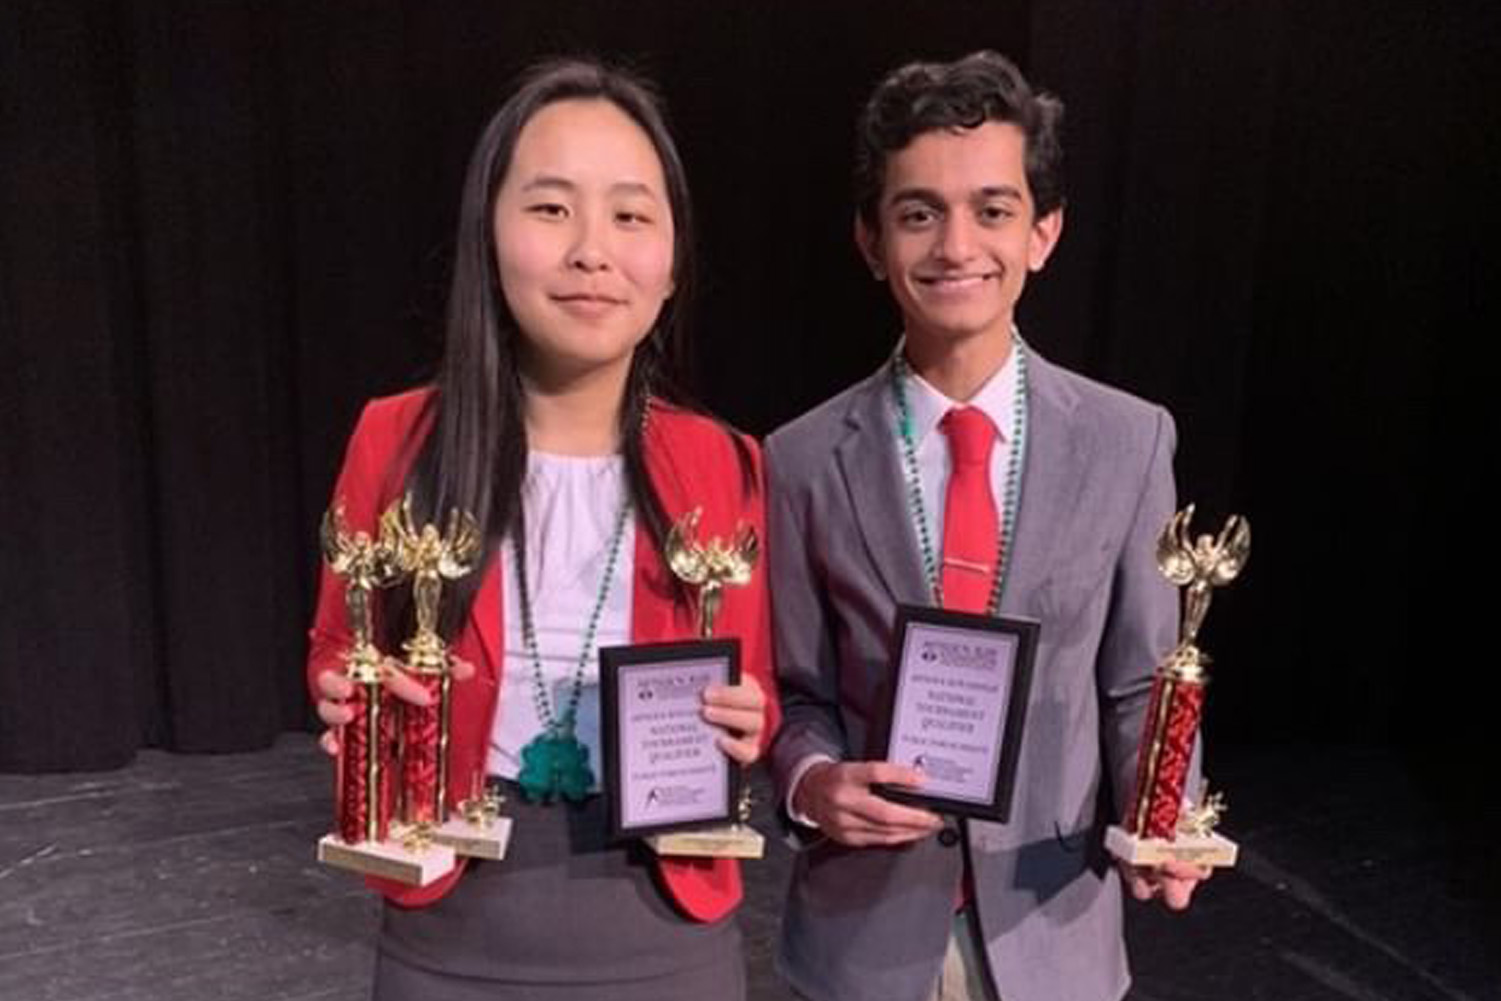 Senior Rachel Pang and freshman Jesh Gandhi pose with their awards after winning first in public forum debate at the Eastern Missouri NSDA Districts Tournament on March 10. This year five MHS students qualified for Nationals, which will be held in Dallas during June 16-21.